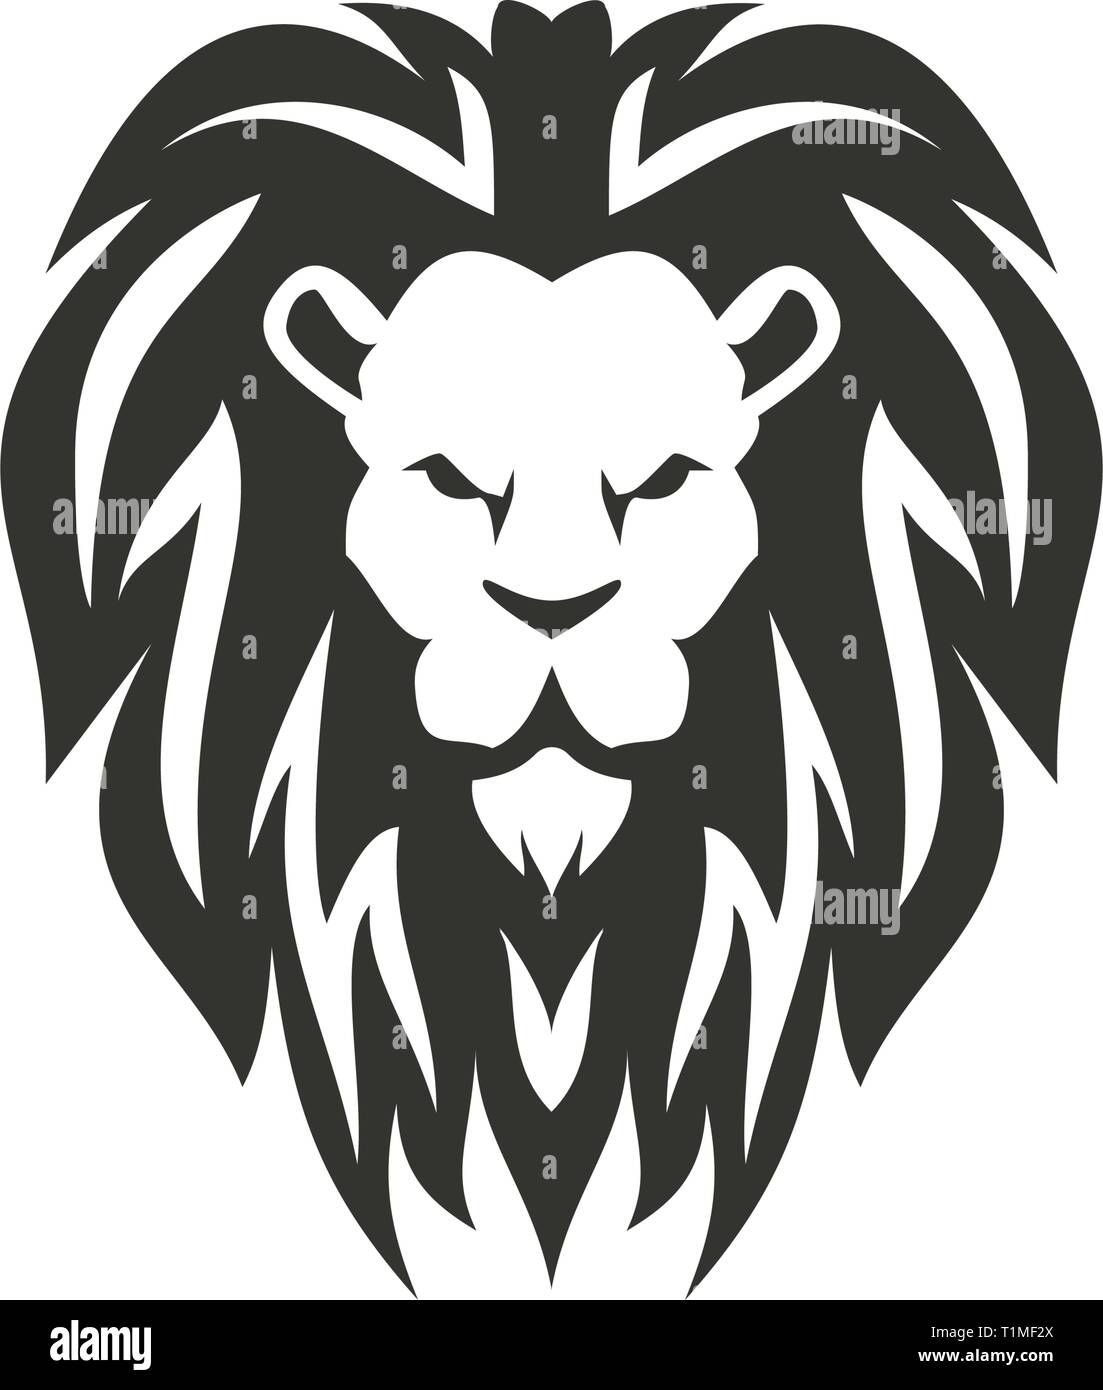 Lion symbol isolated on white background. - Stock Vector